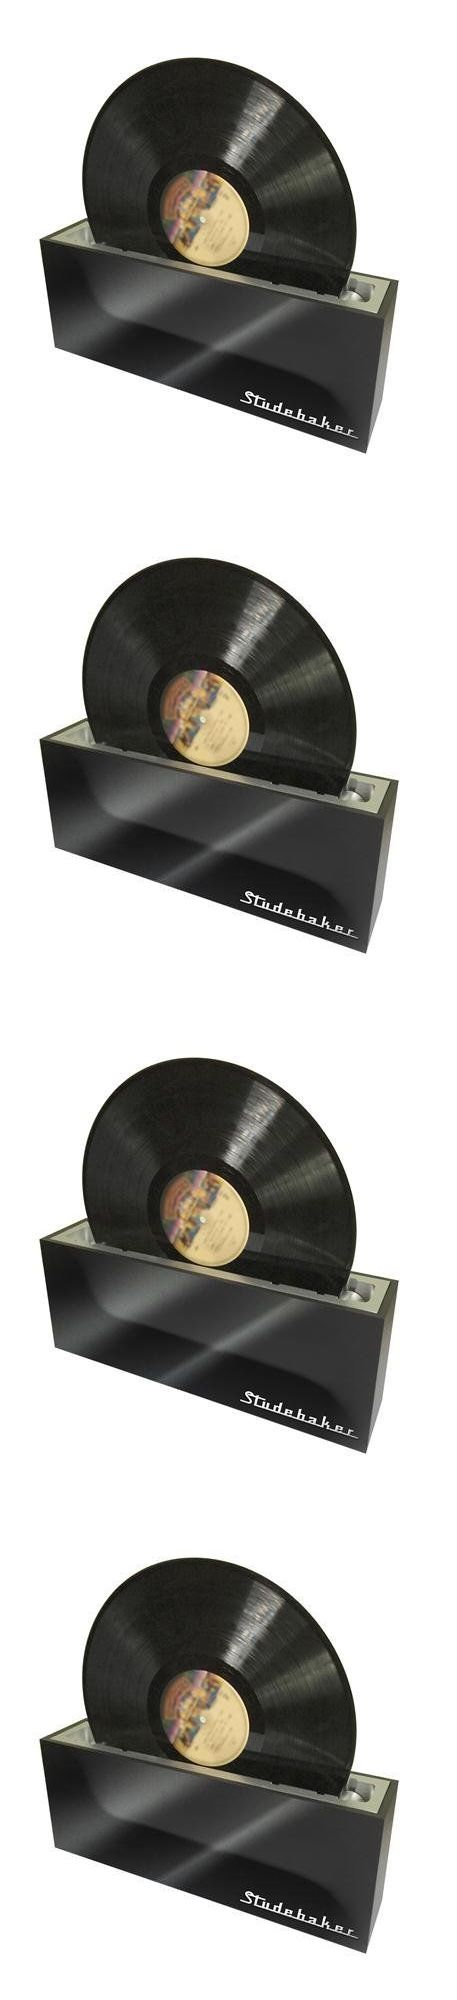 Vinyl Record Cleaning: Vinyl Record Cleaning System Cleaning Solution And Soft Pads Included Discwasher -> BUY IT NOW ONLY: $55.19 on eBay!